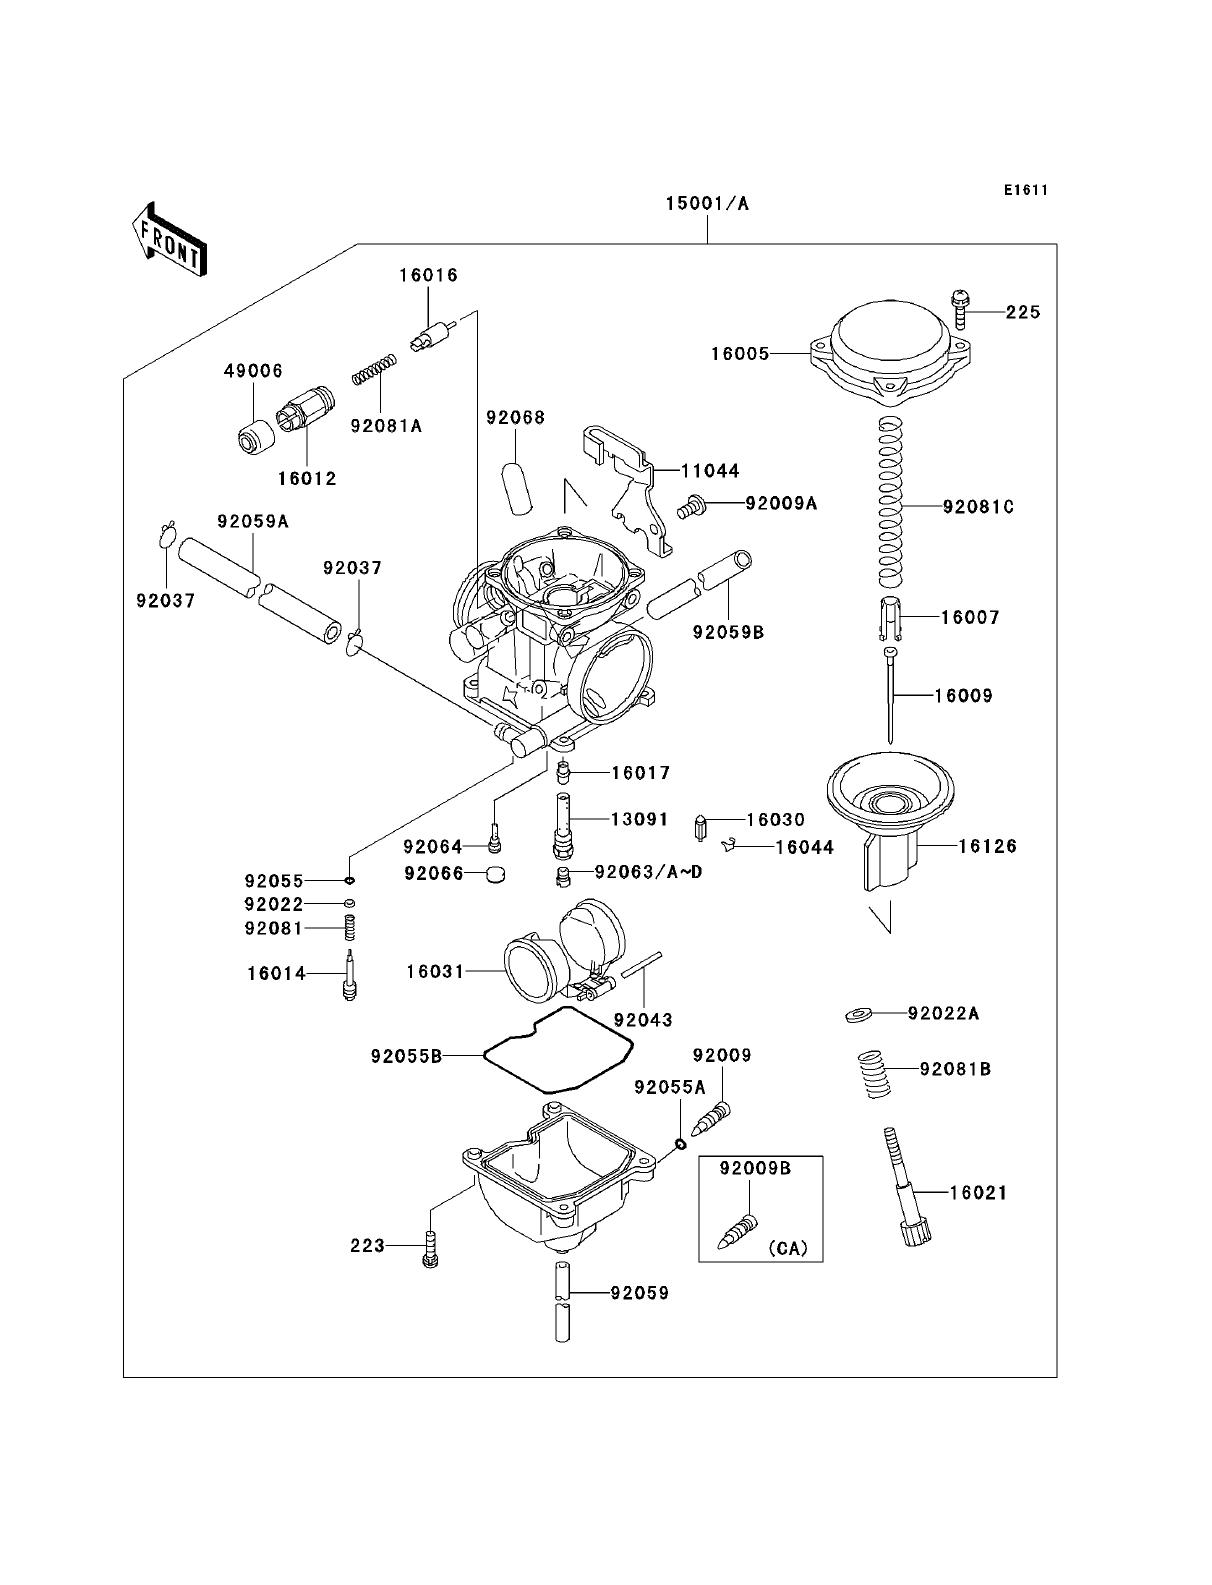 2009 Klr 650 Wiring Diagram Library. Kawasaki Klr250 Parts Diagrams Blogs 7elspartsdiagramcarburetor 2009 Klr 650 Wiring Diagram. Kawasaki. 2006 Kawasaki Klr 650 Wiring Diagram At Scoala.co